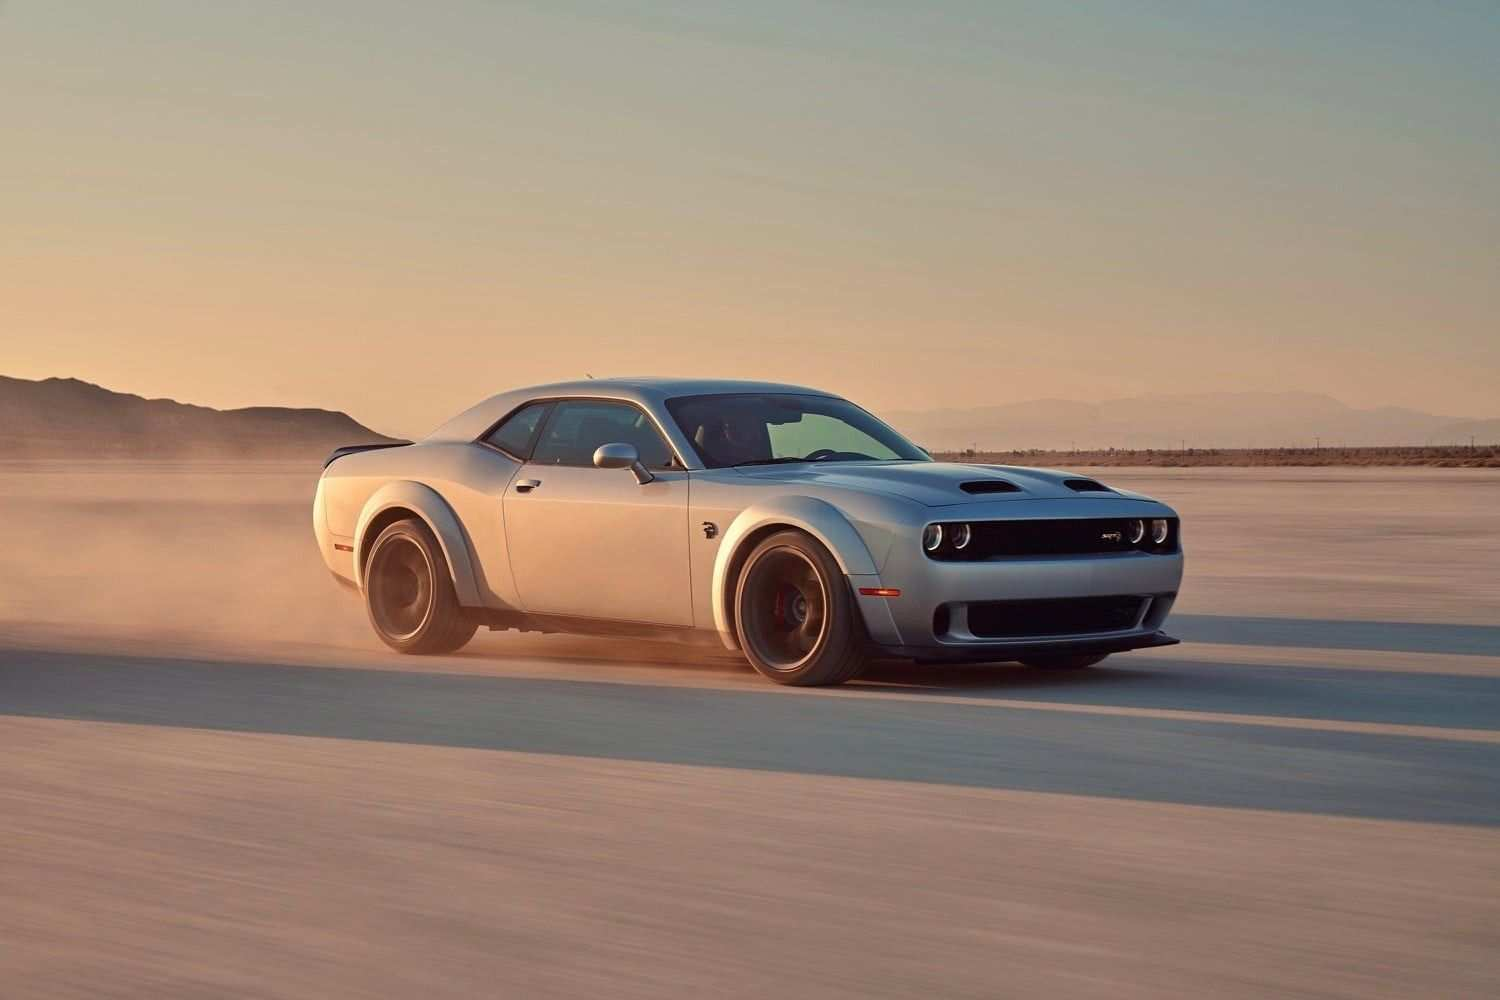 41 Concept of New Dodge New 2019 Release Date Price And Review Speed Test for New Dodge New 2019 Release Date Price And Review